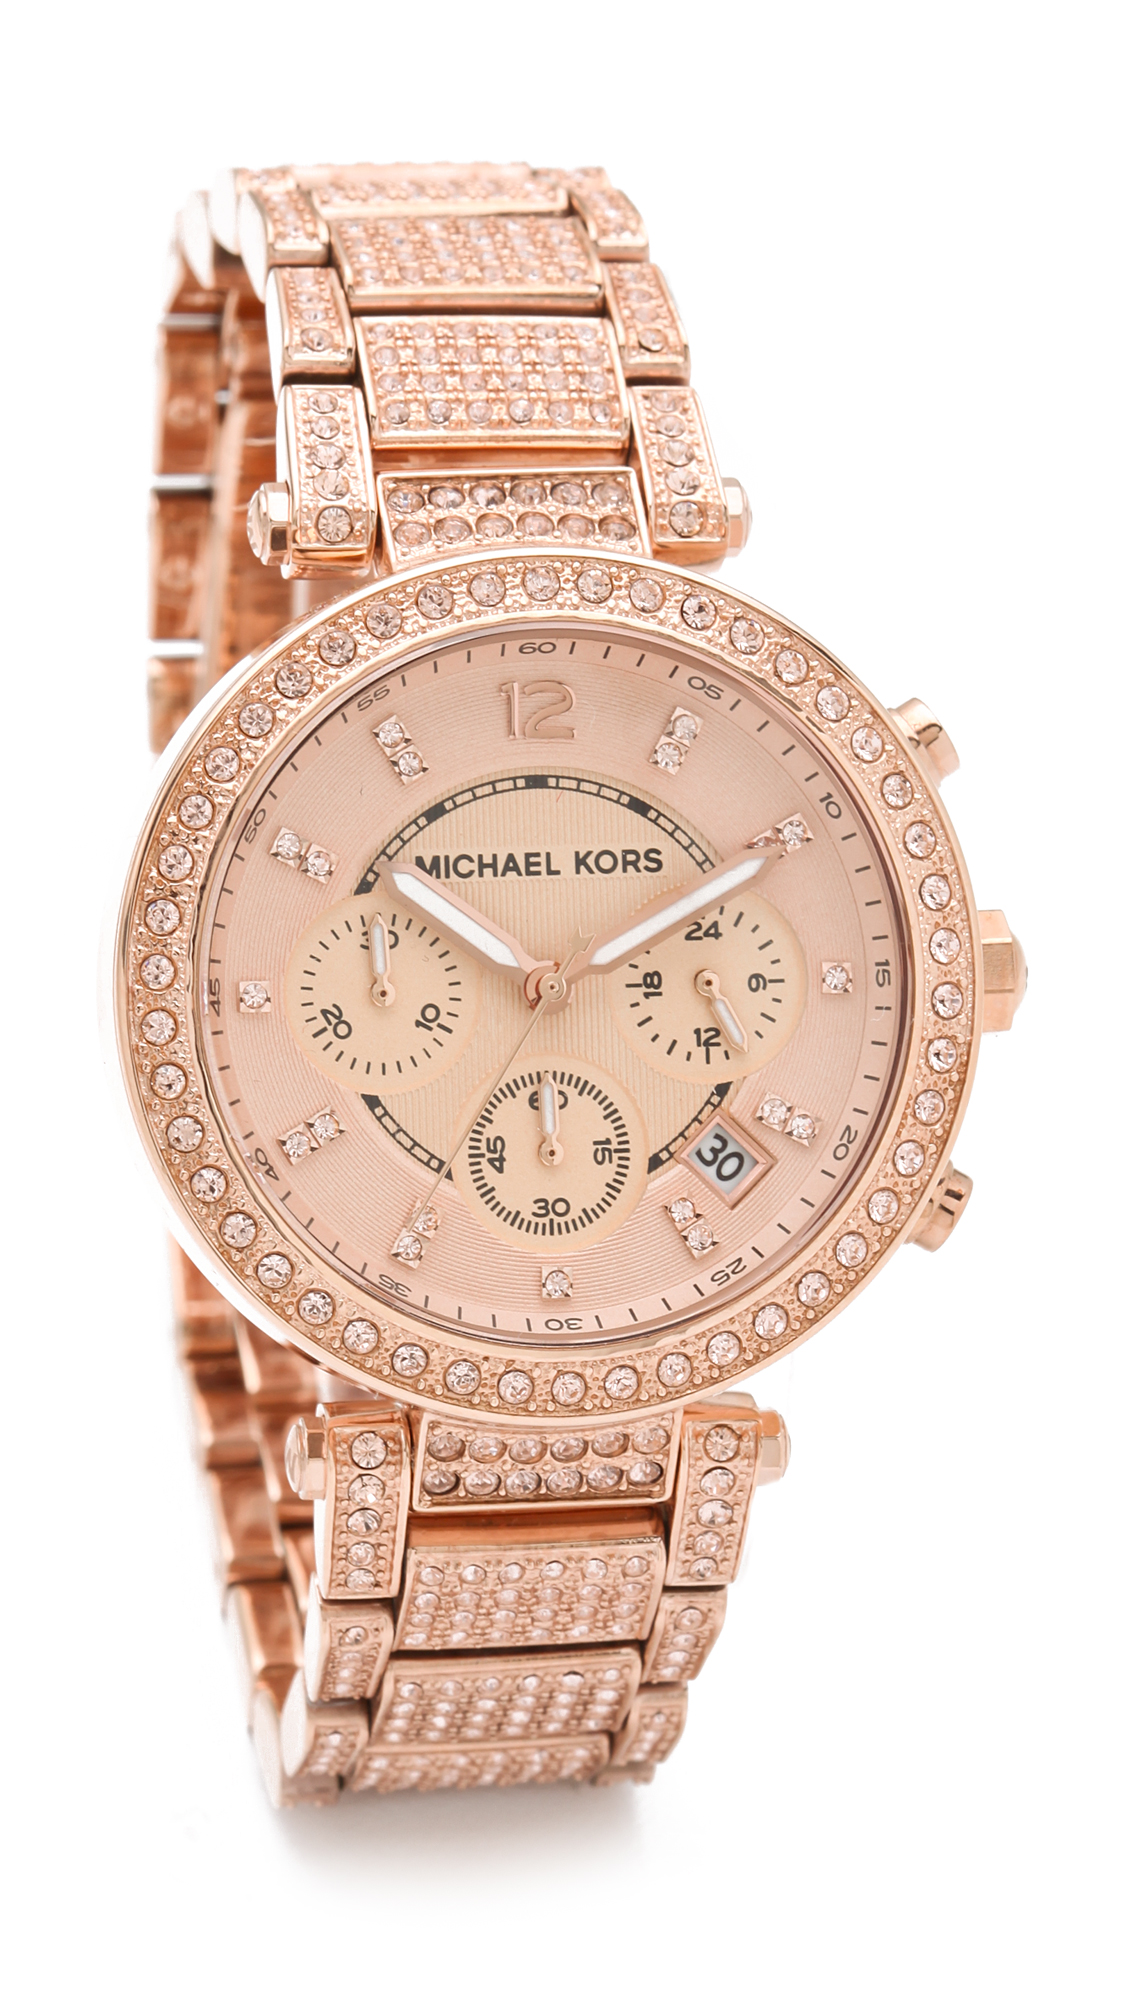 Wearable Tech Michael Kors Access is an Android Wear smartwatch for fashionistas. The first smartwatch from Michael Kors is big, beautiful and powered by Android Wear.